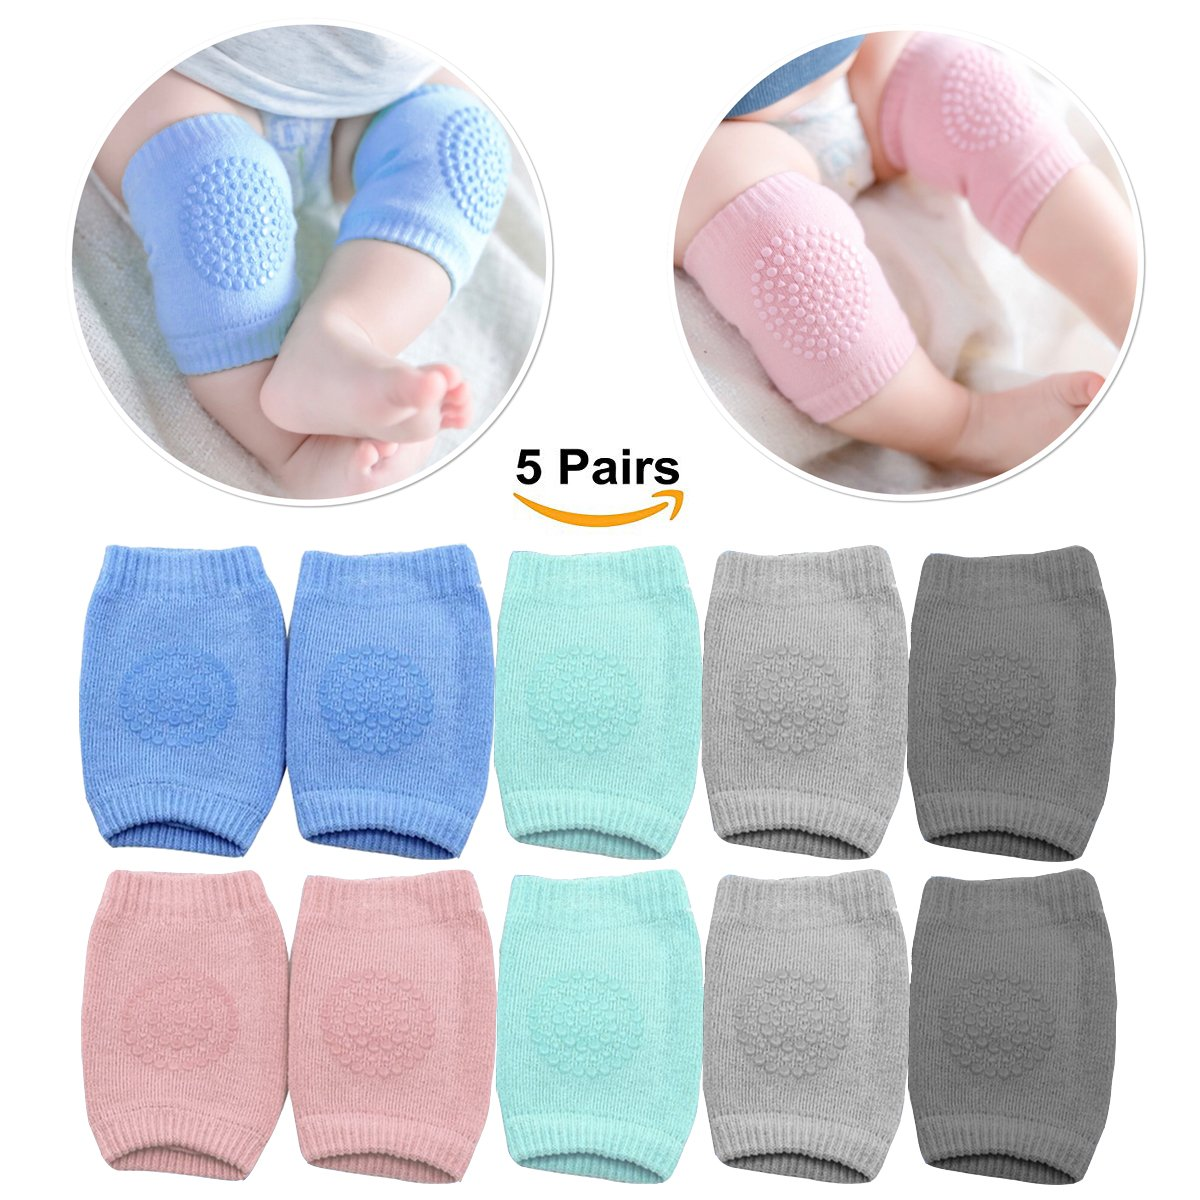 Baby Knee Pads for Crawling with Anti-Slip Grip - 5 Pairs - Boys & Girls Color Options - by MJsmile (Baby Girl)